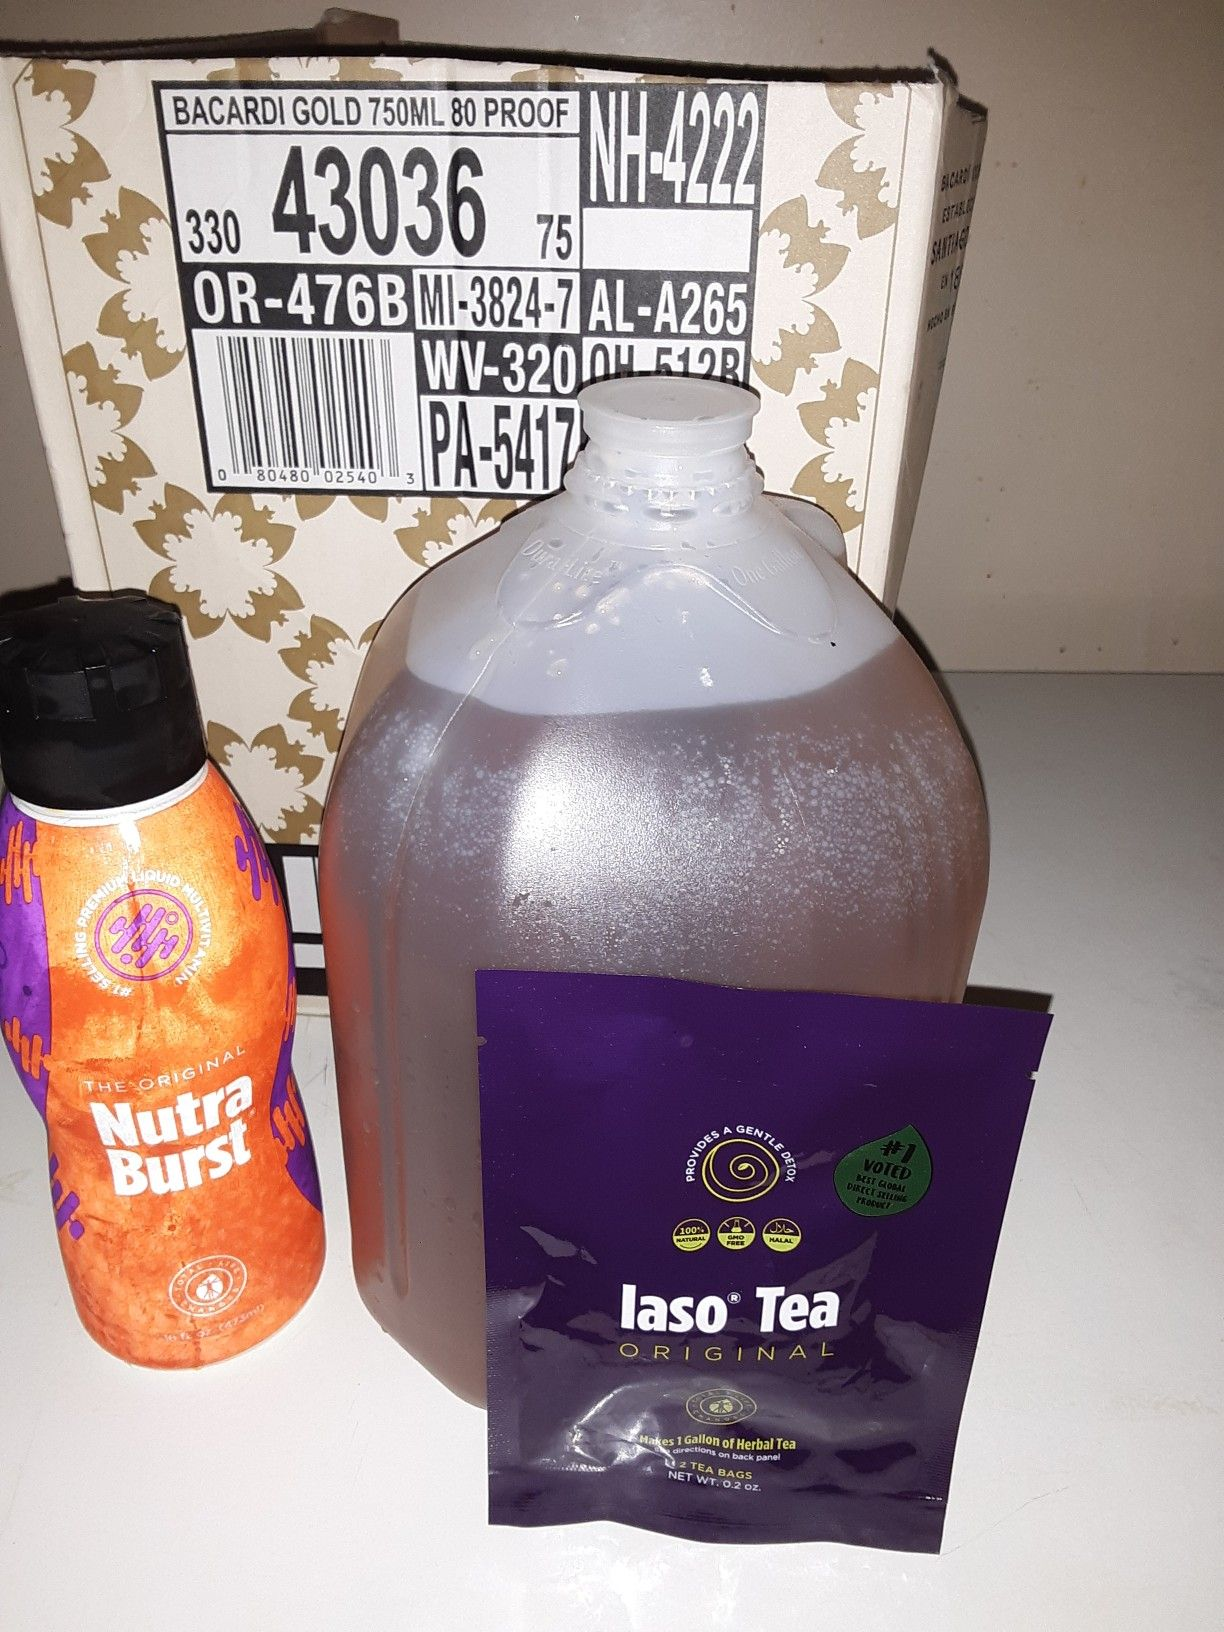 A Great Way To Start The Morning One Glass Of Iaso Tea And A Tbsp Of Nutra Burst That S 11 Vitamins 72 Nutr Total Life Changes Home Health Remedies Iaso Tea